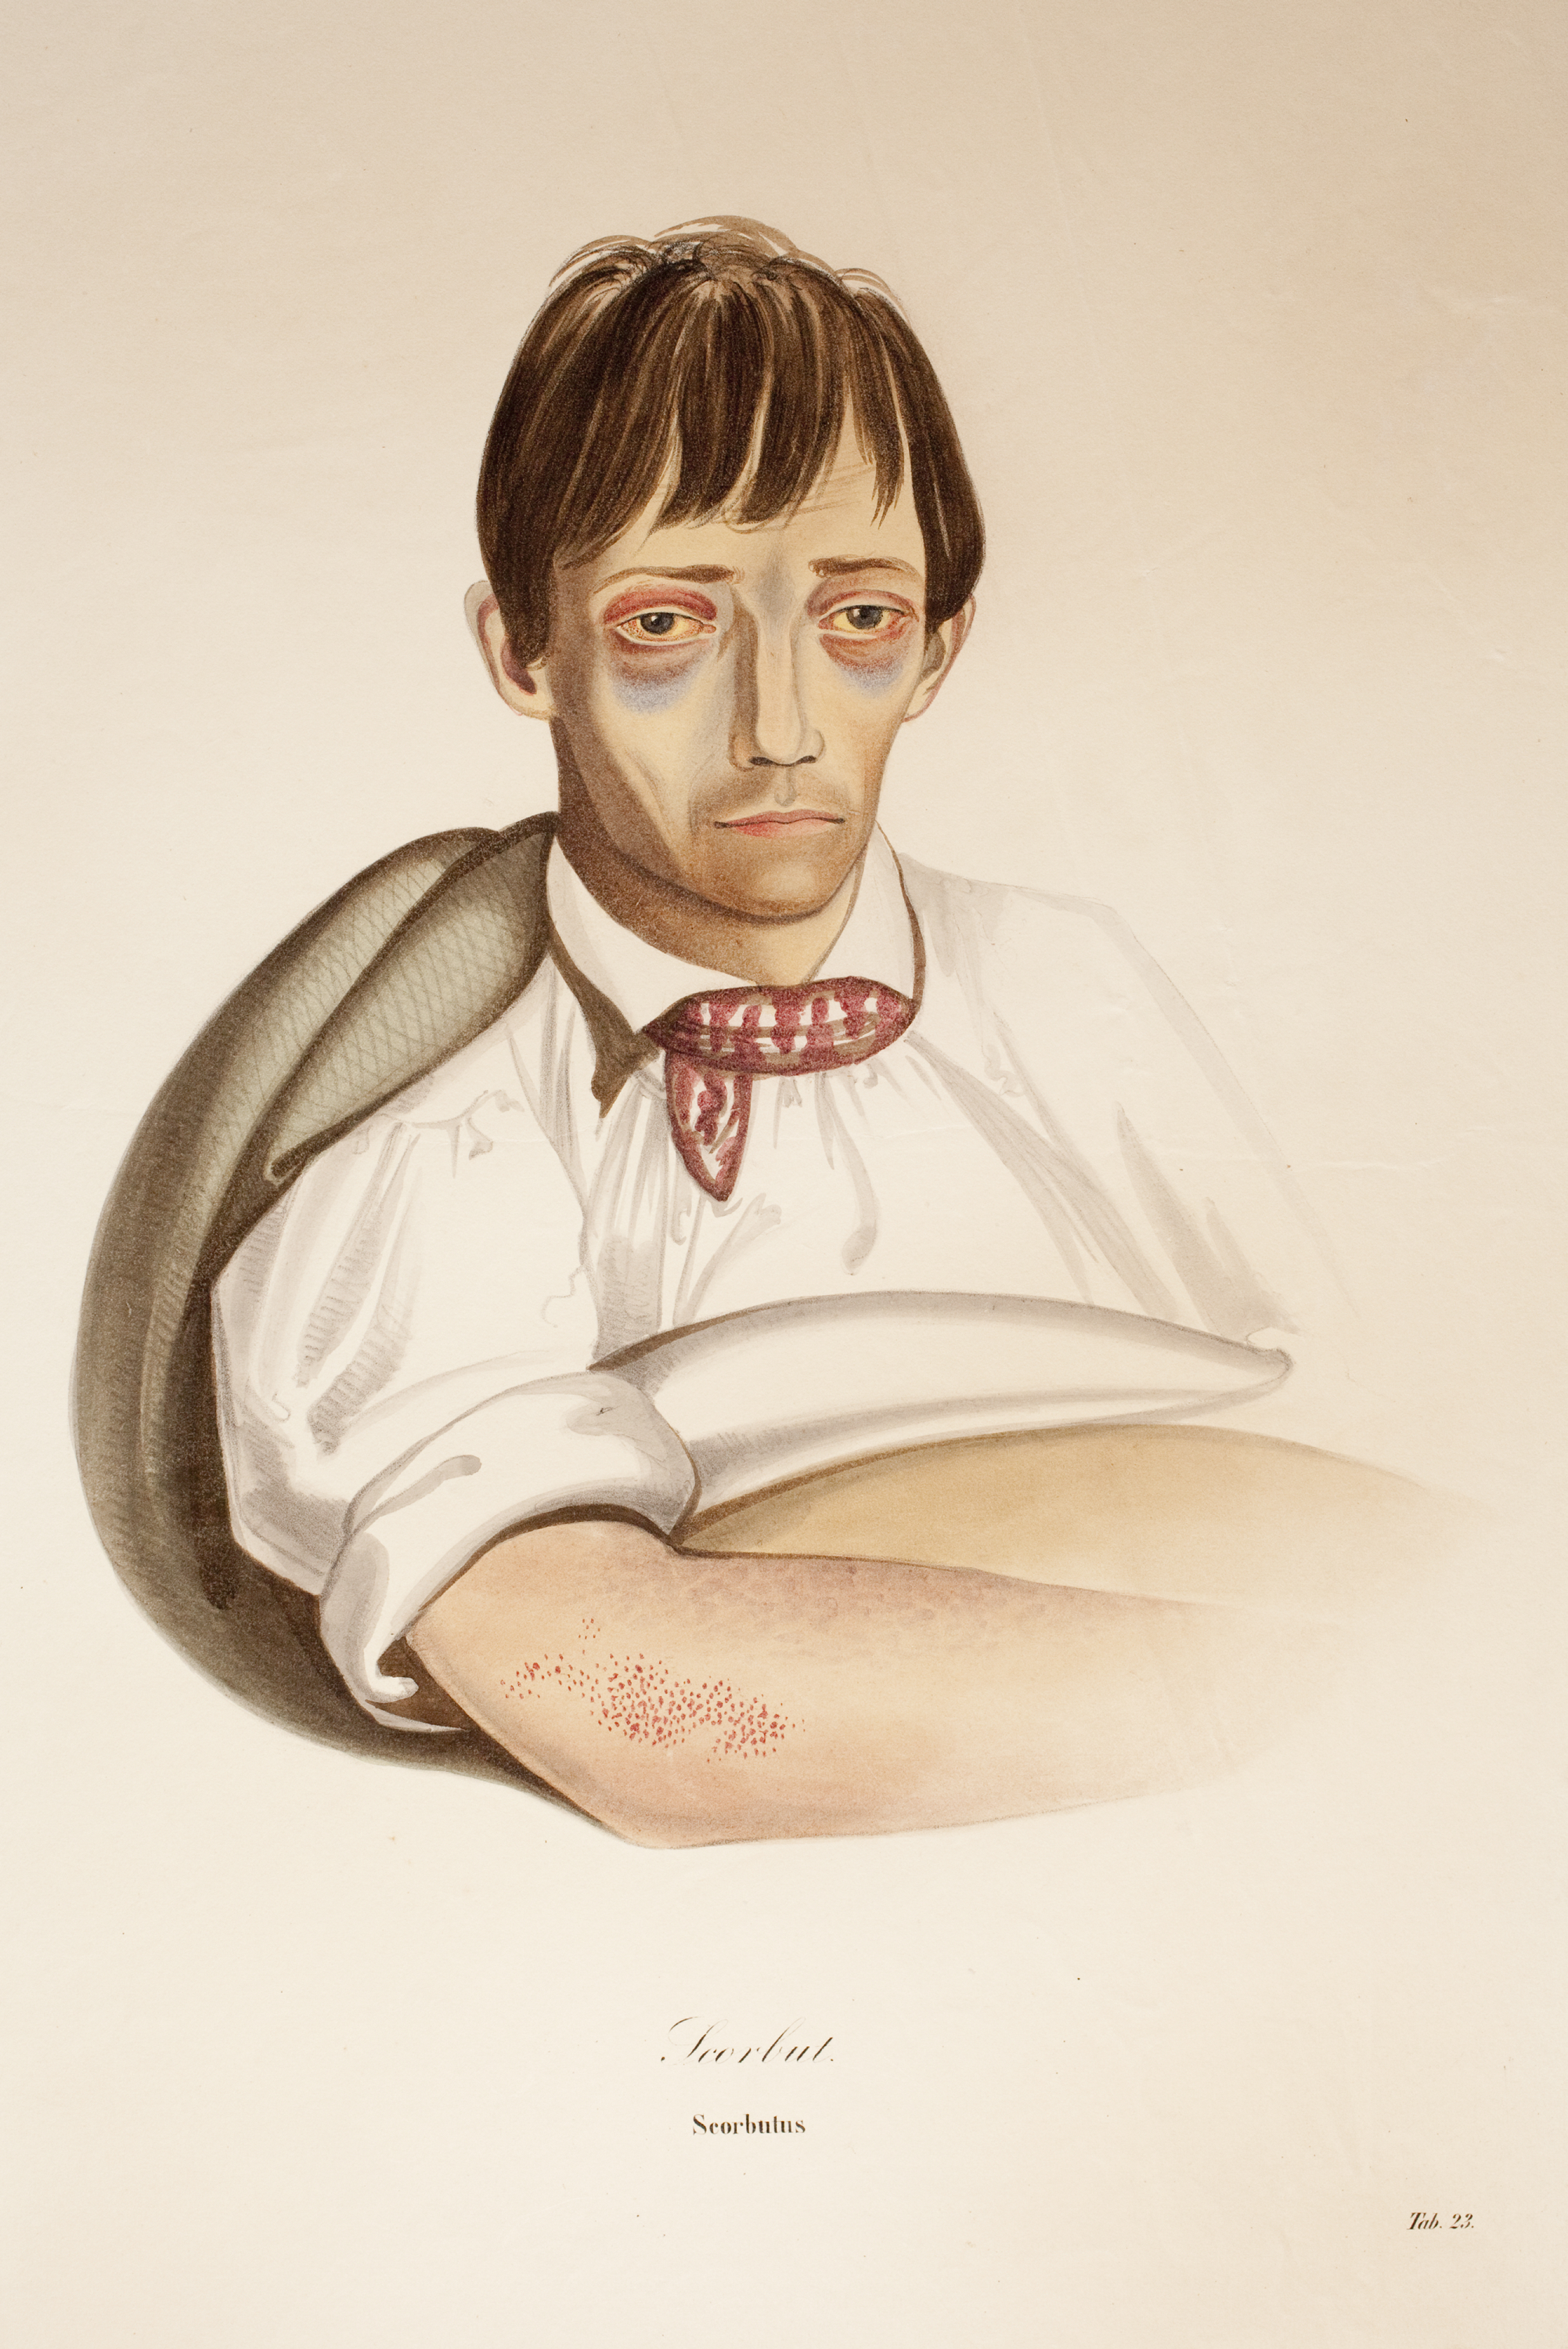 Hand-coloured print of tired and unwell looking man in bed.